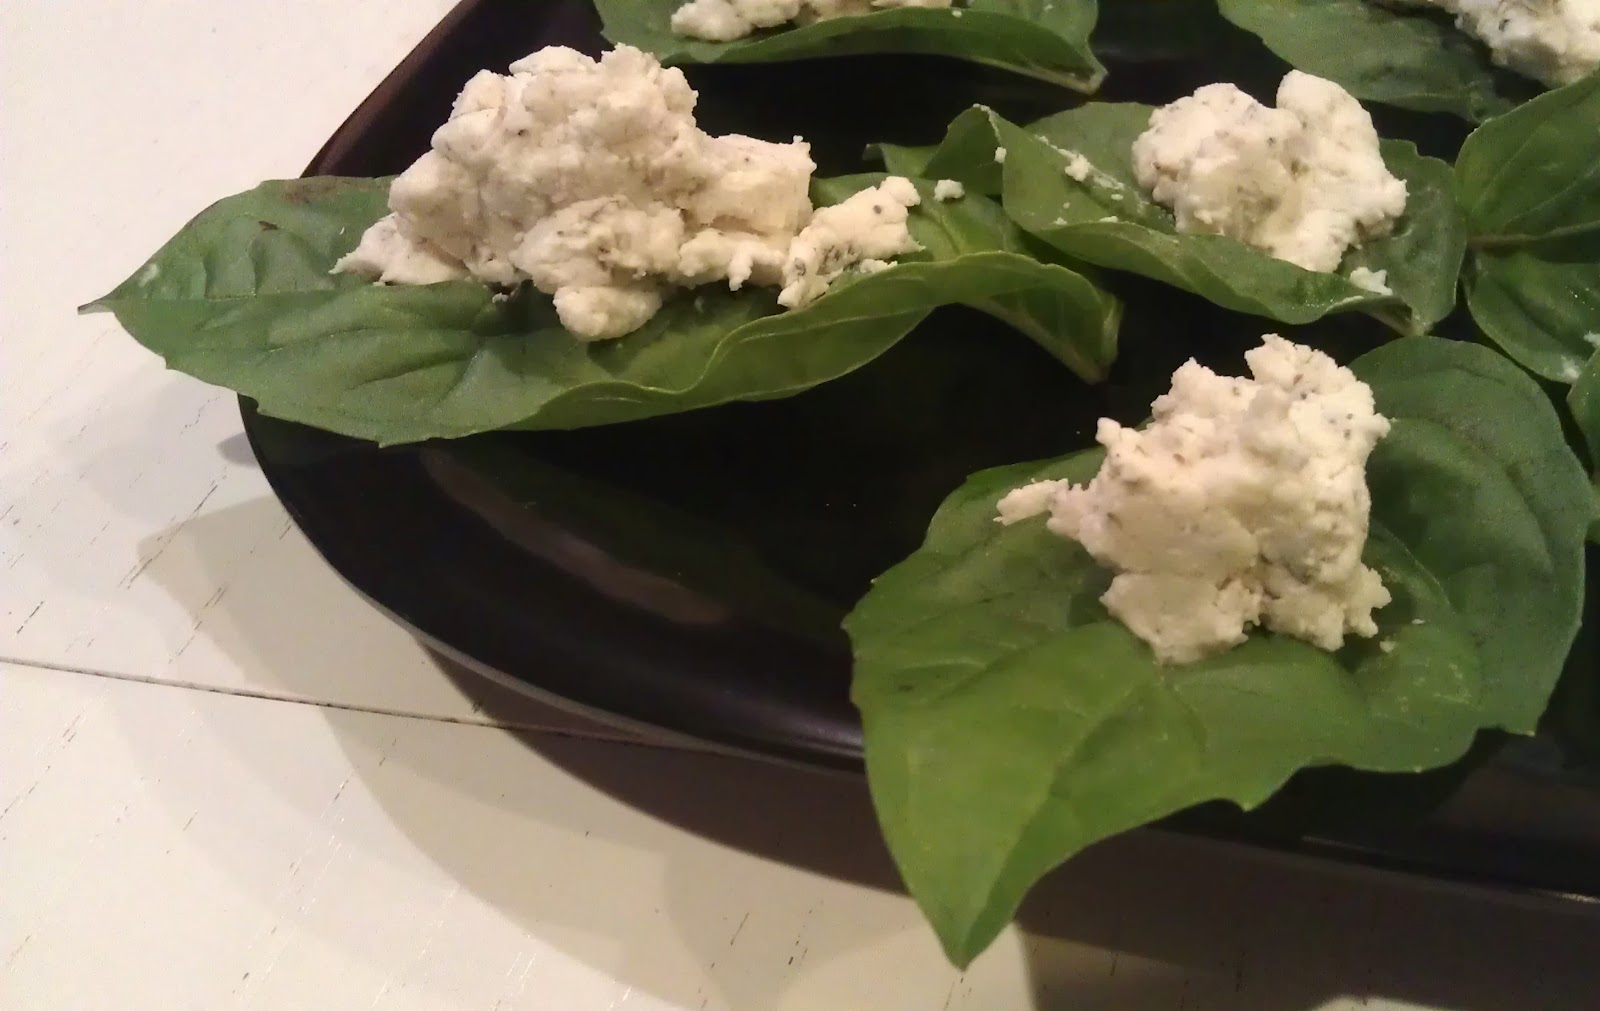 cheese prim s goat cheese with basil prim s basil wrapped goat hunger ...